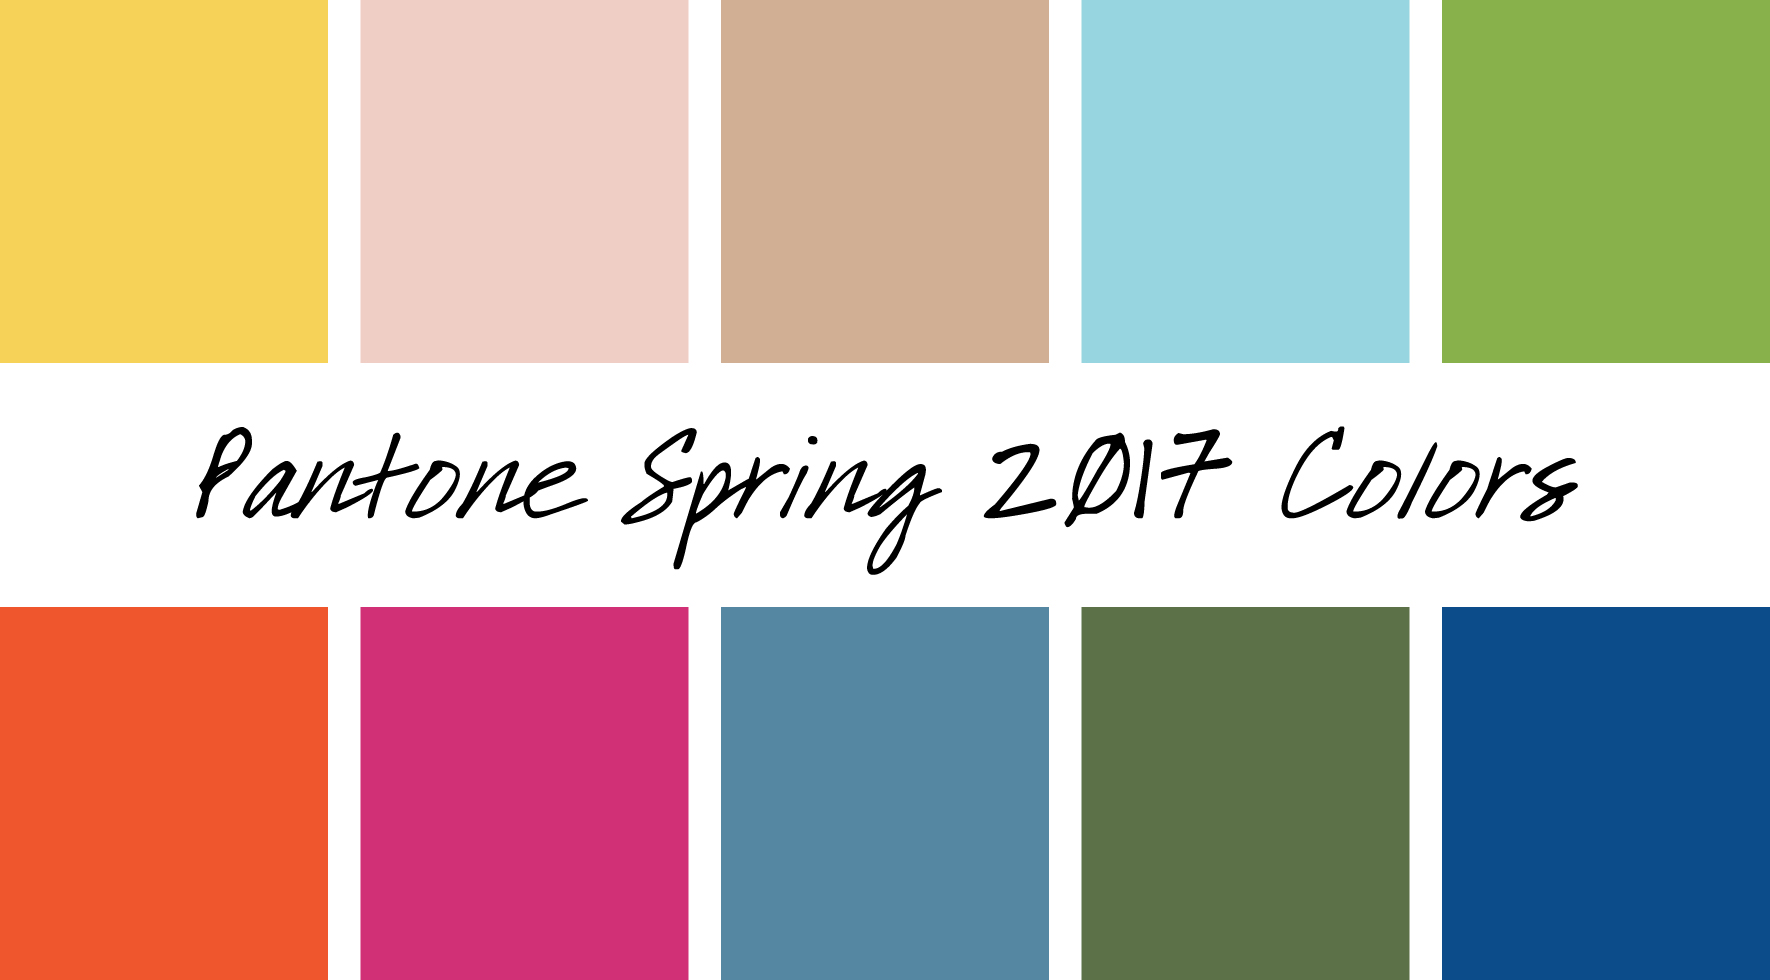 Pantone 2017 Top 10 Color Trends For Spring 2017